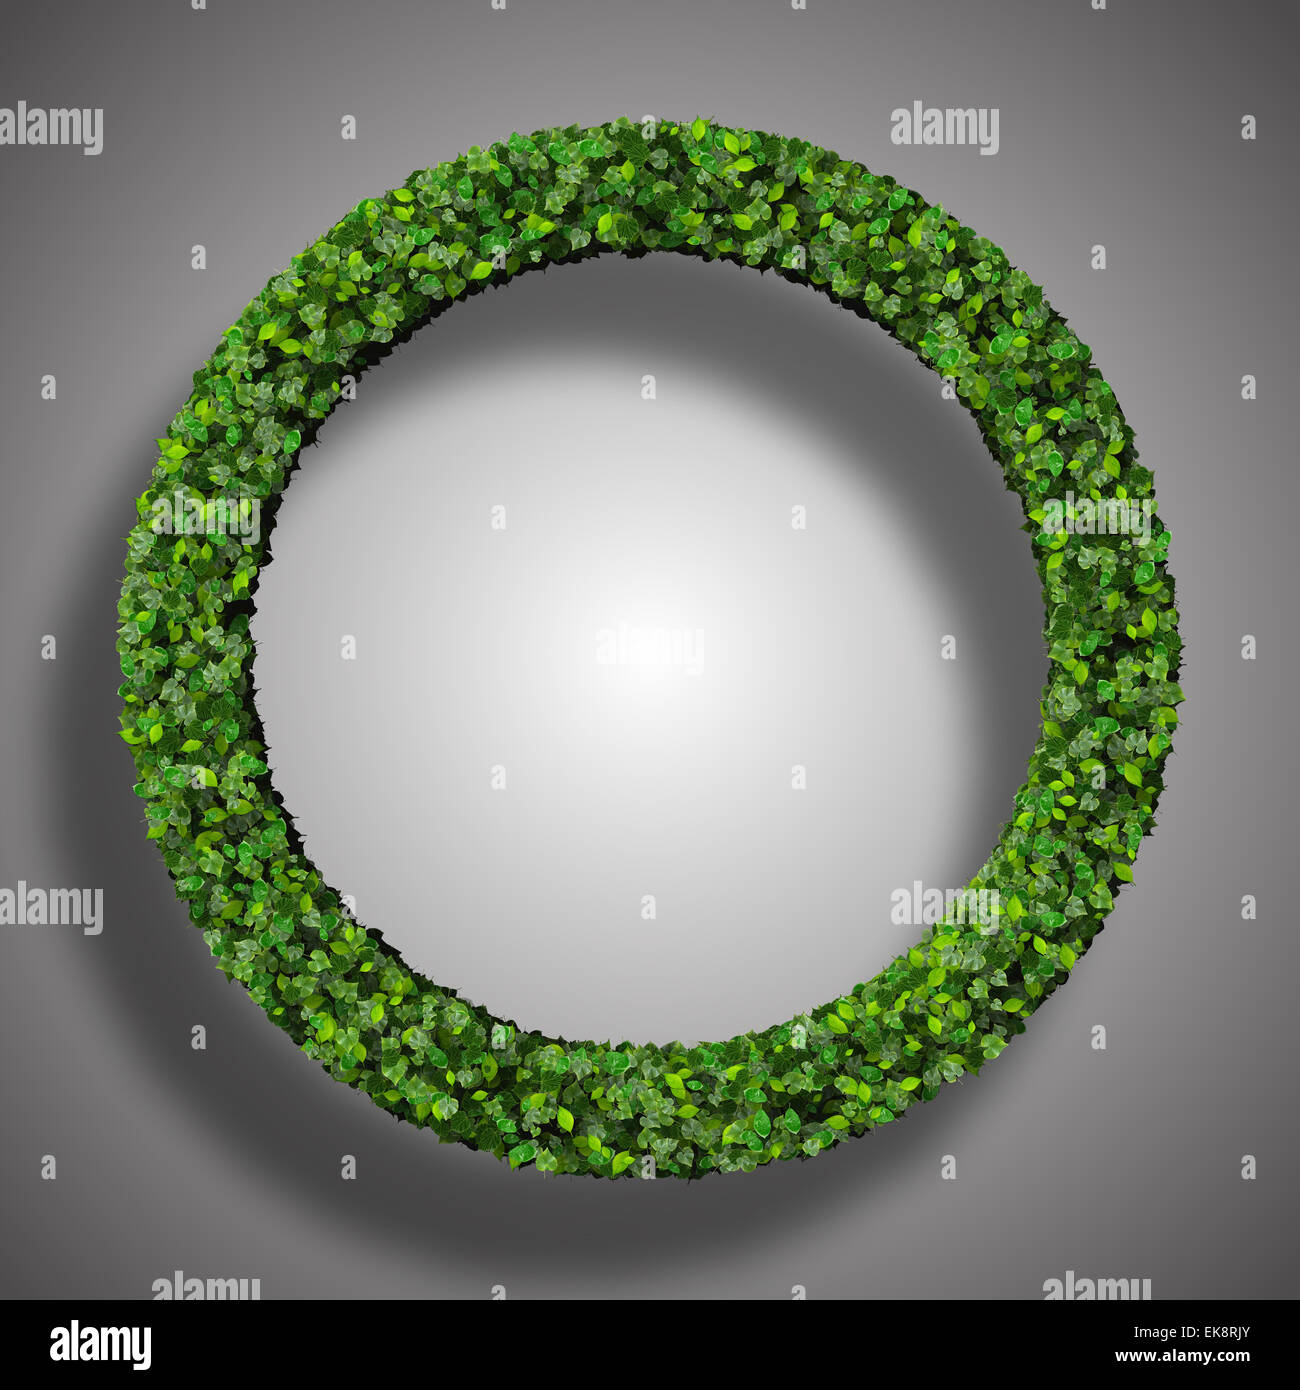 Ring made from green leaves isolated on white background. 3d render. - Stock Image